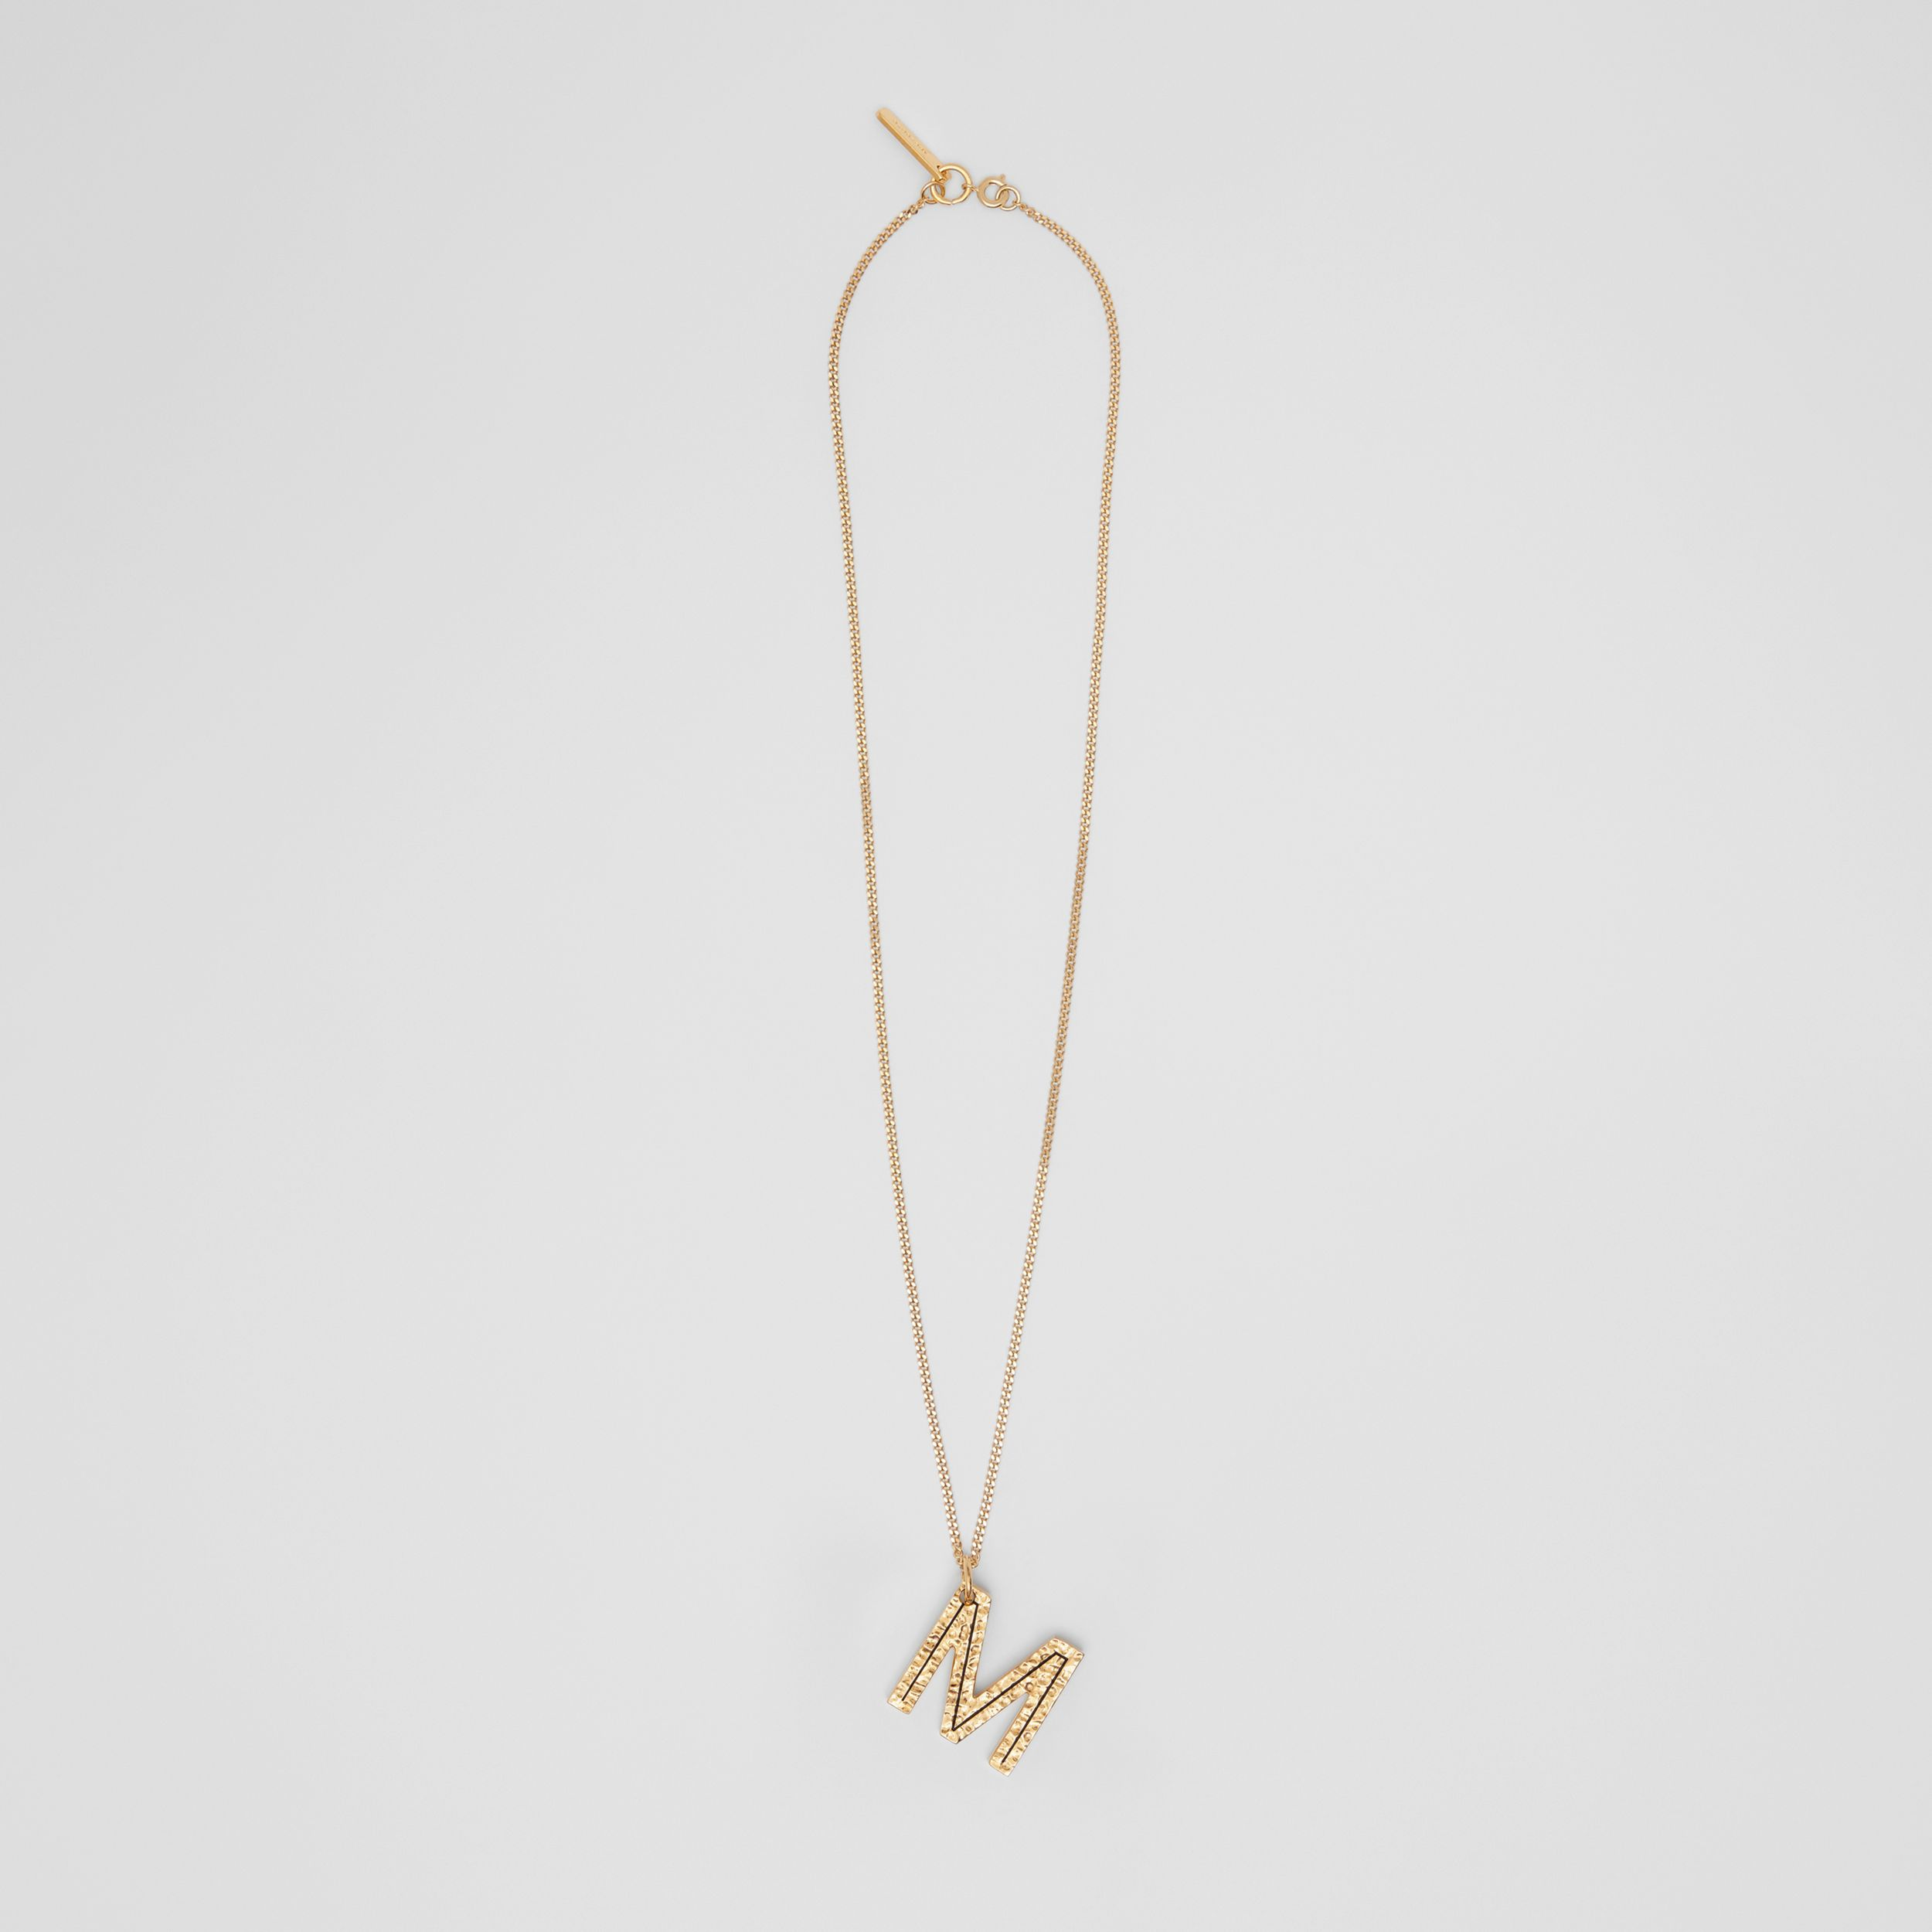 'M' Alphabet Charm Gold-plated Necklace in Light - Women | Burberry - 1